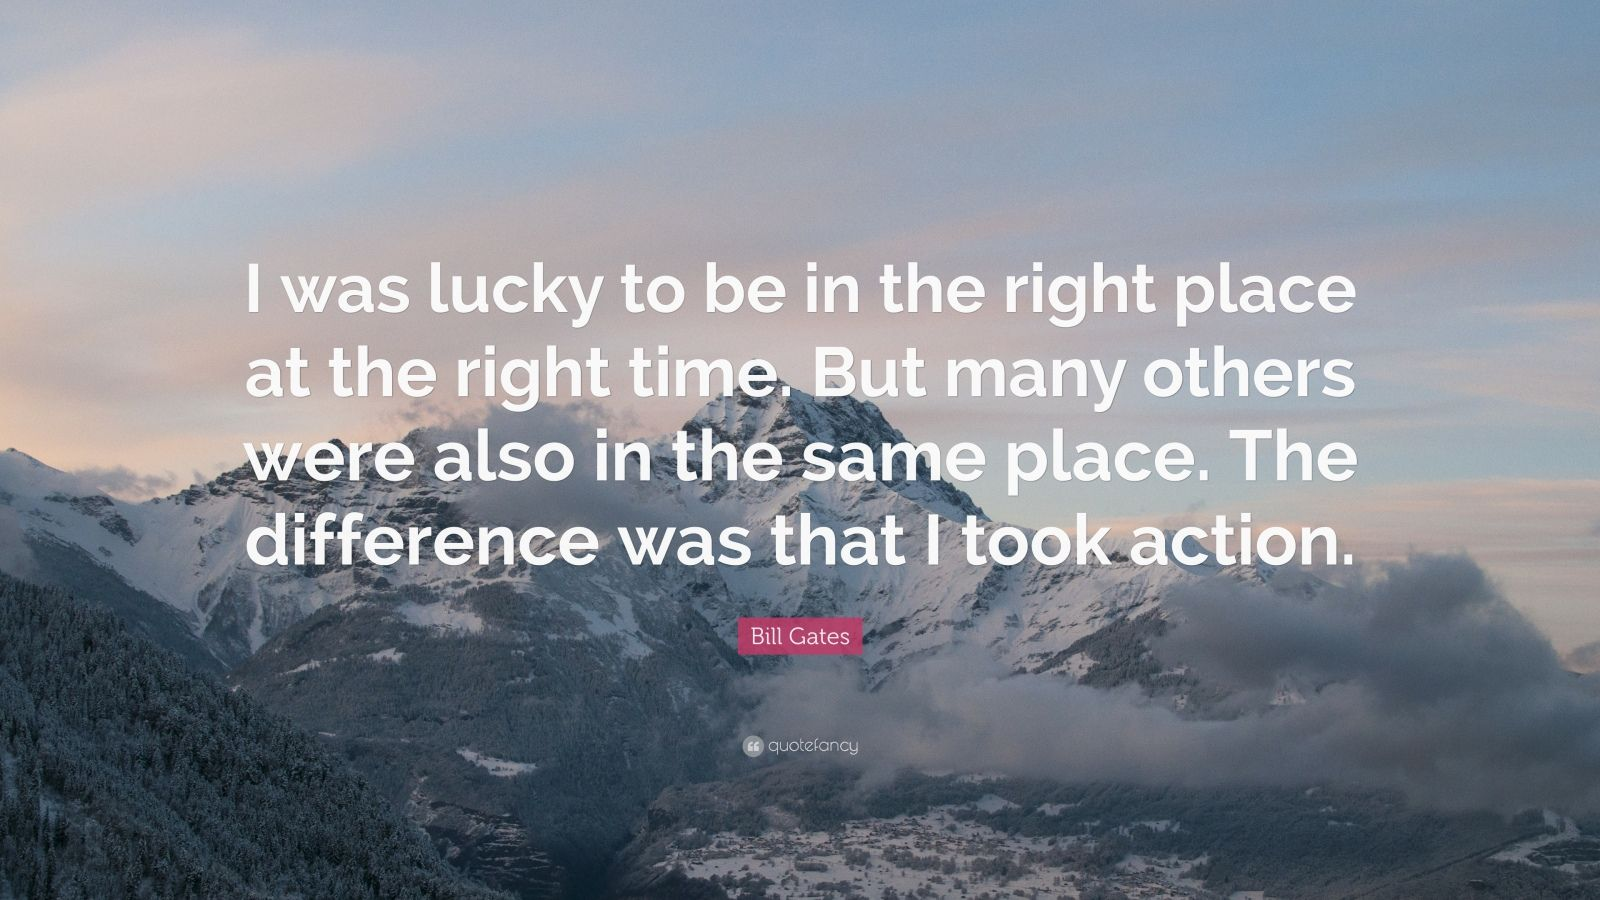 "Bill Gates Quote: ""I was lucky to be in the right place at the right time. But many others were also in the same place. The difference was that I took action."""